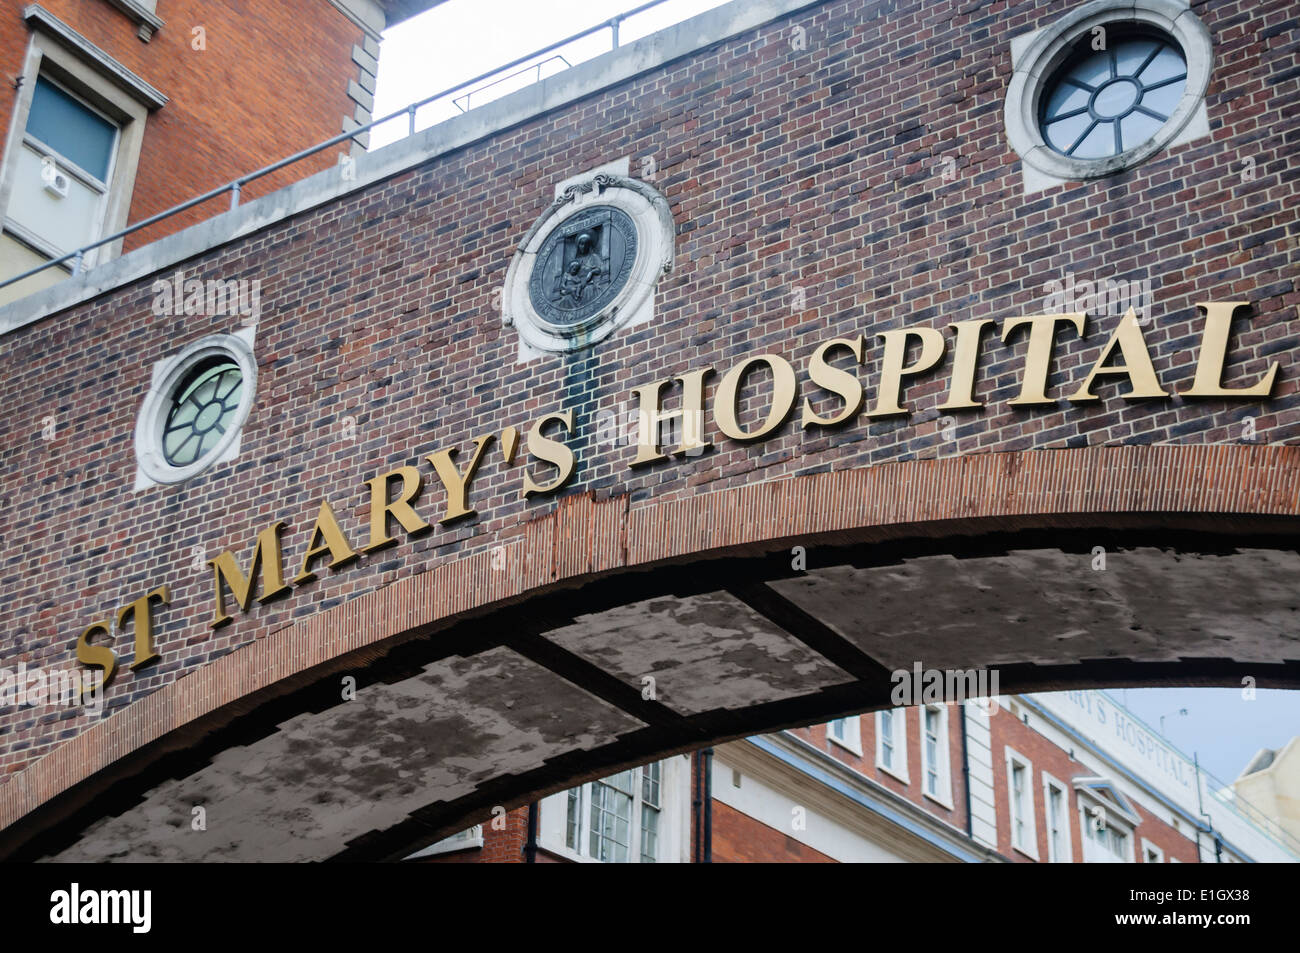 St. Mary's Hospital, London - Stock Image